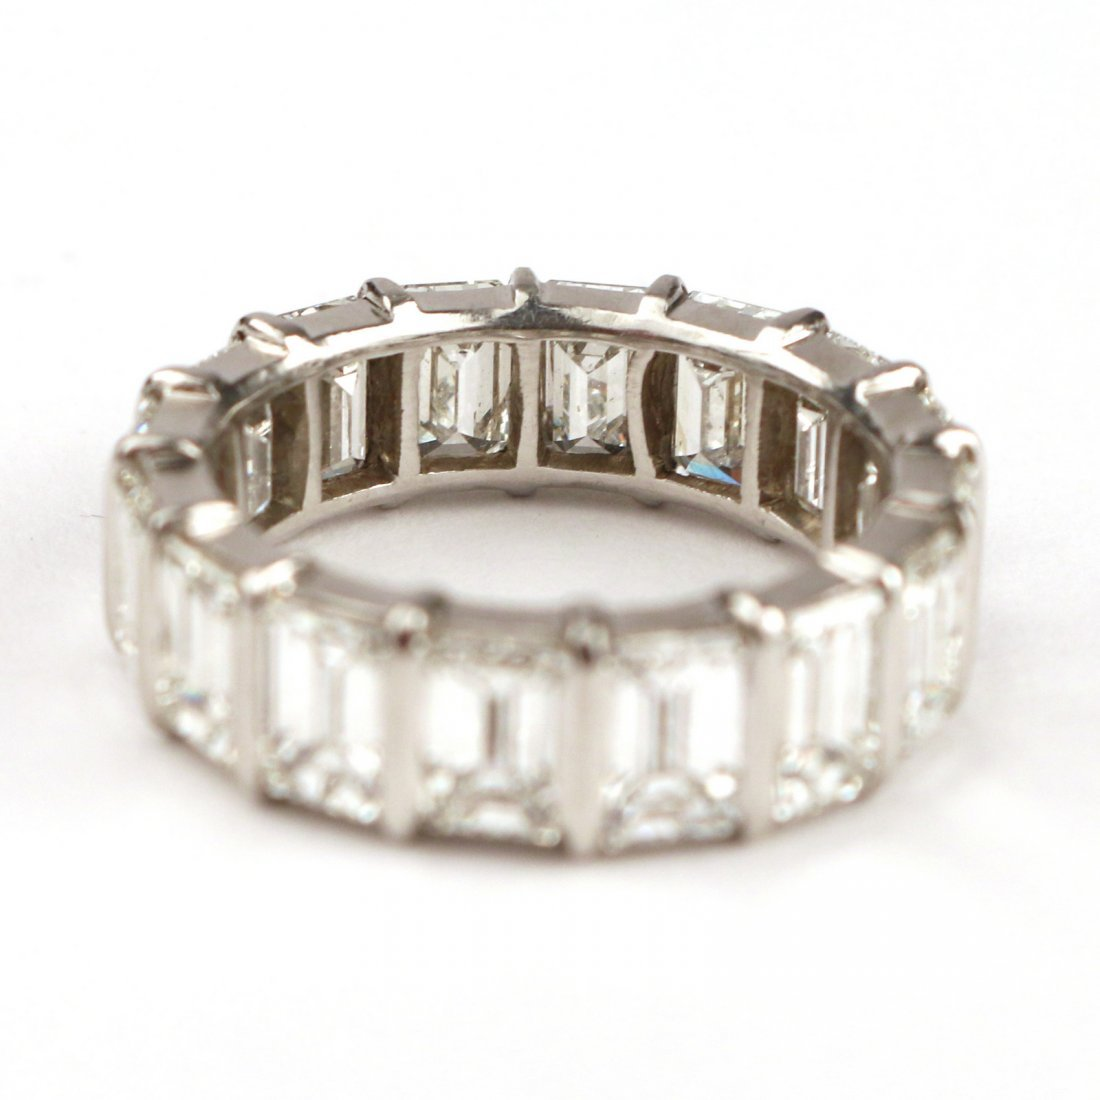 EMERALD CUT DIAMOND ETERNITY BAND - 3